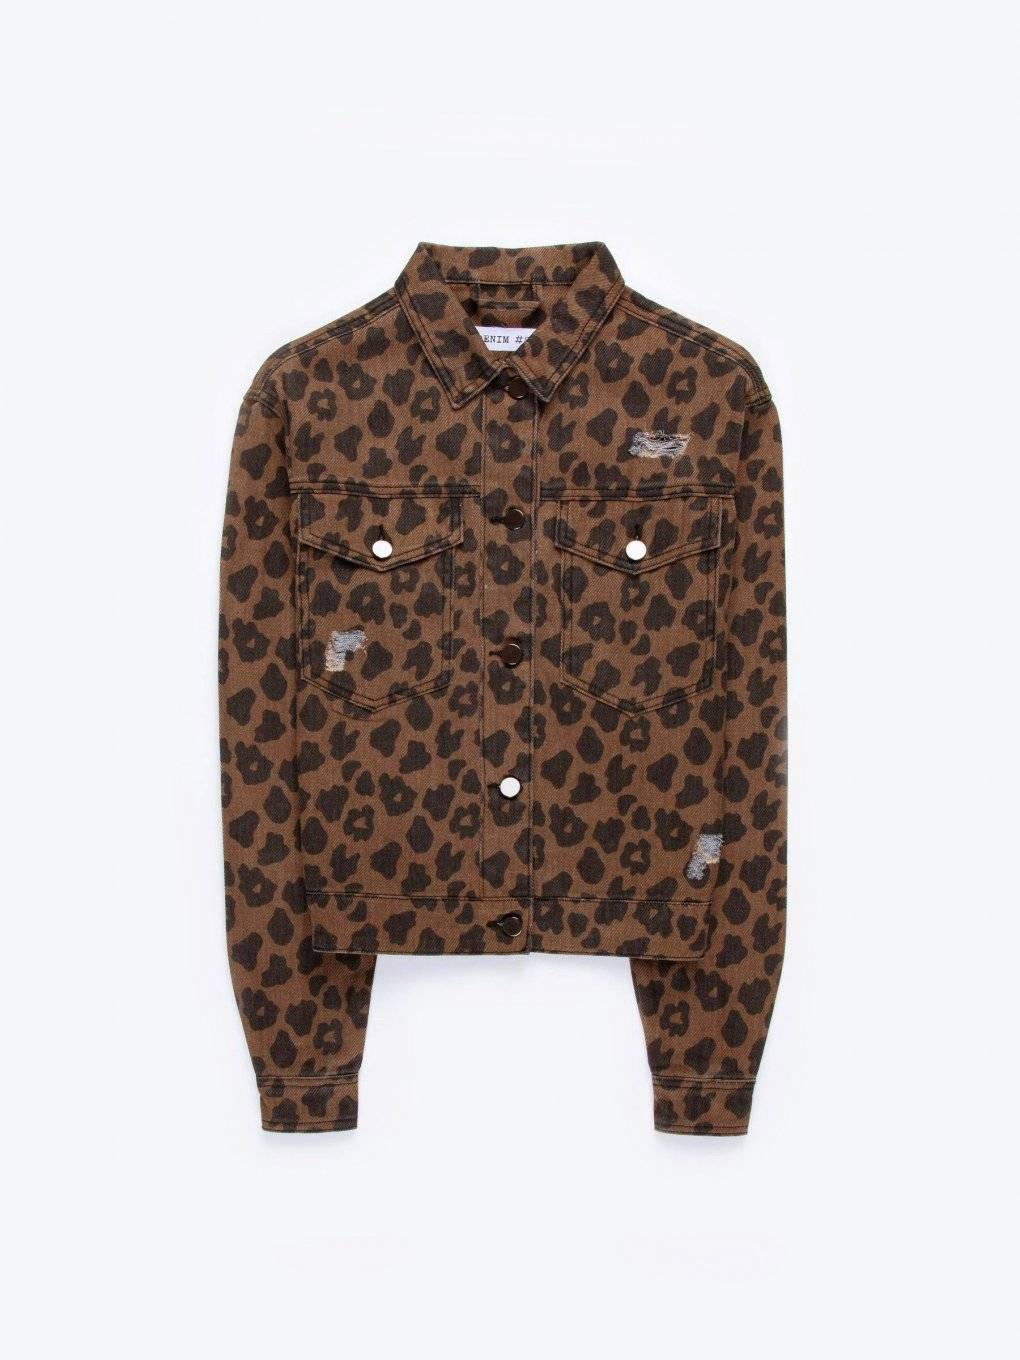 Animal print denim jacket